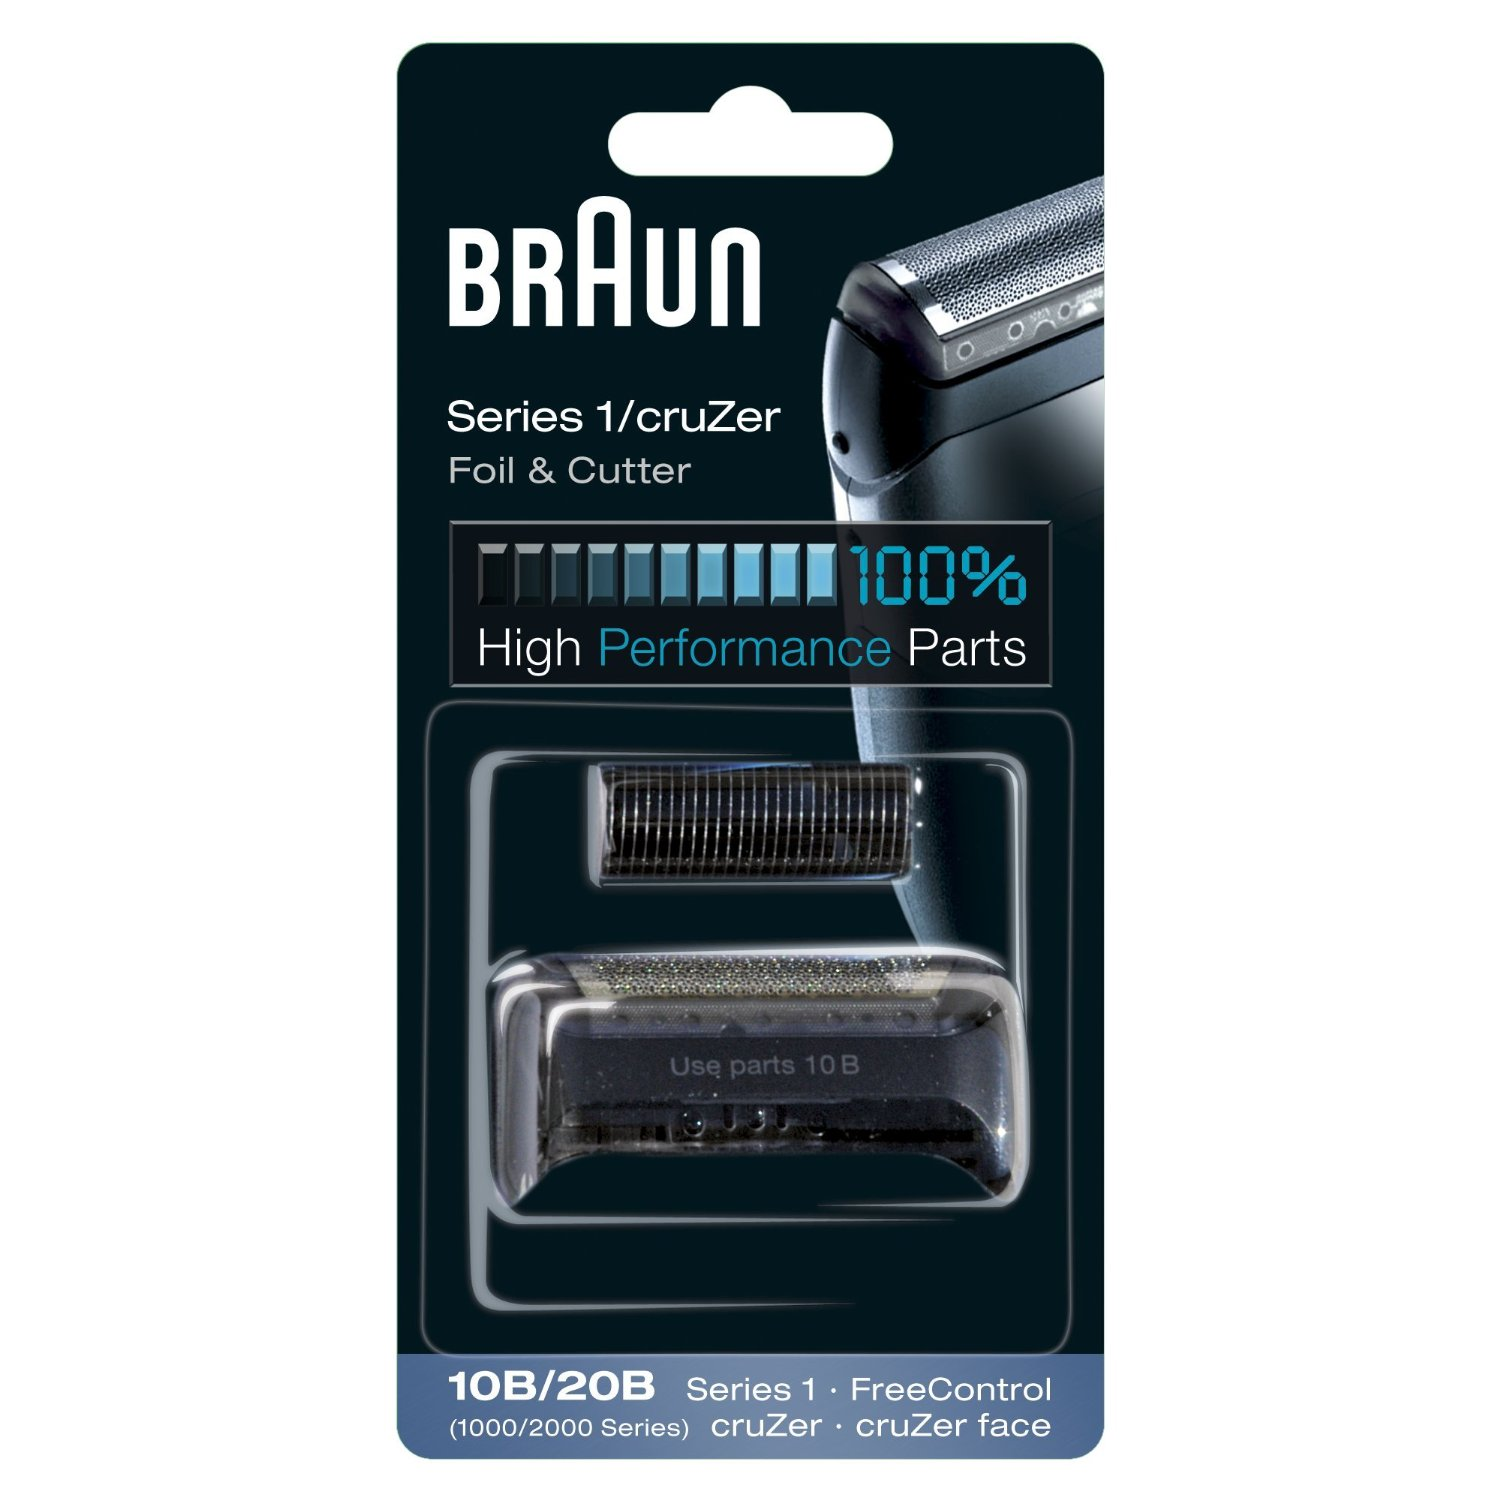 Braun Series 1 Replacement Shaver Head Cassette, 10B, Black